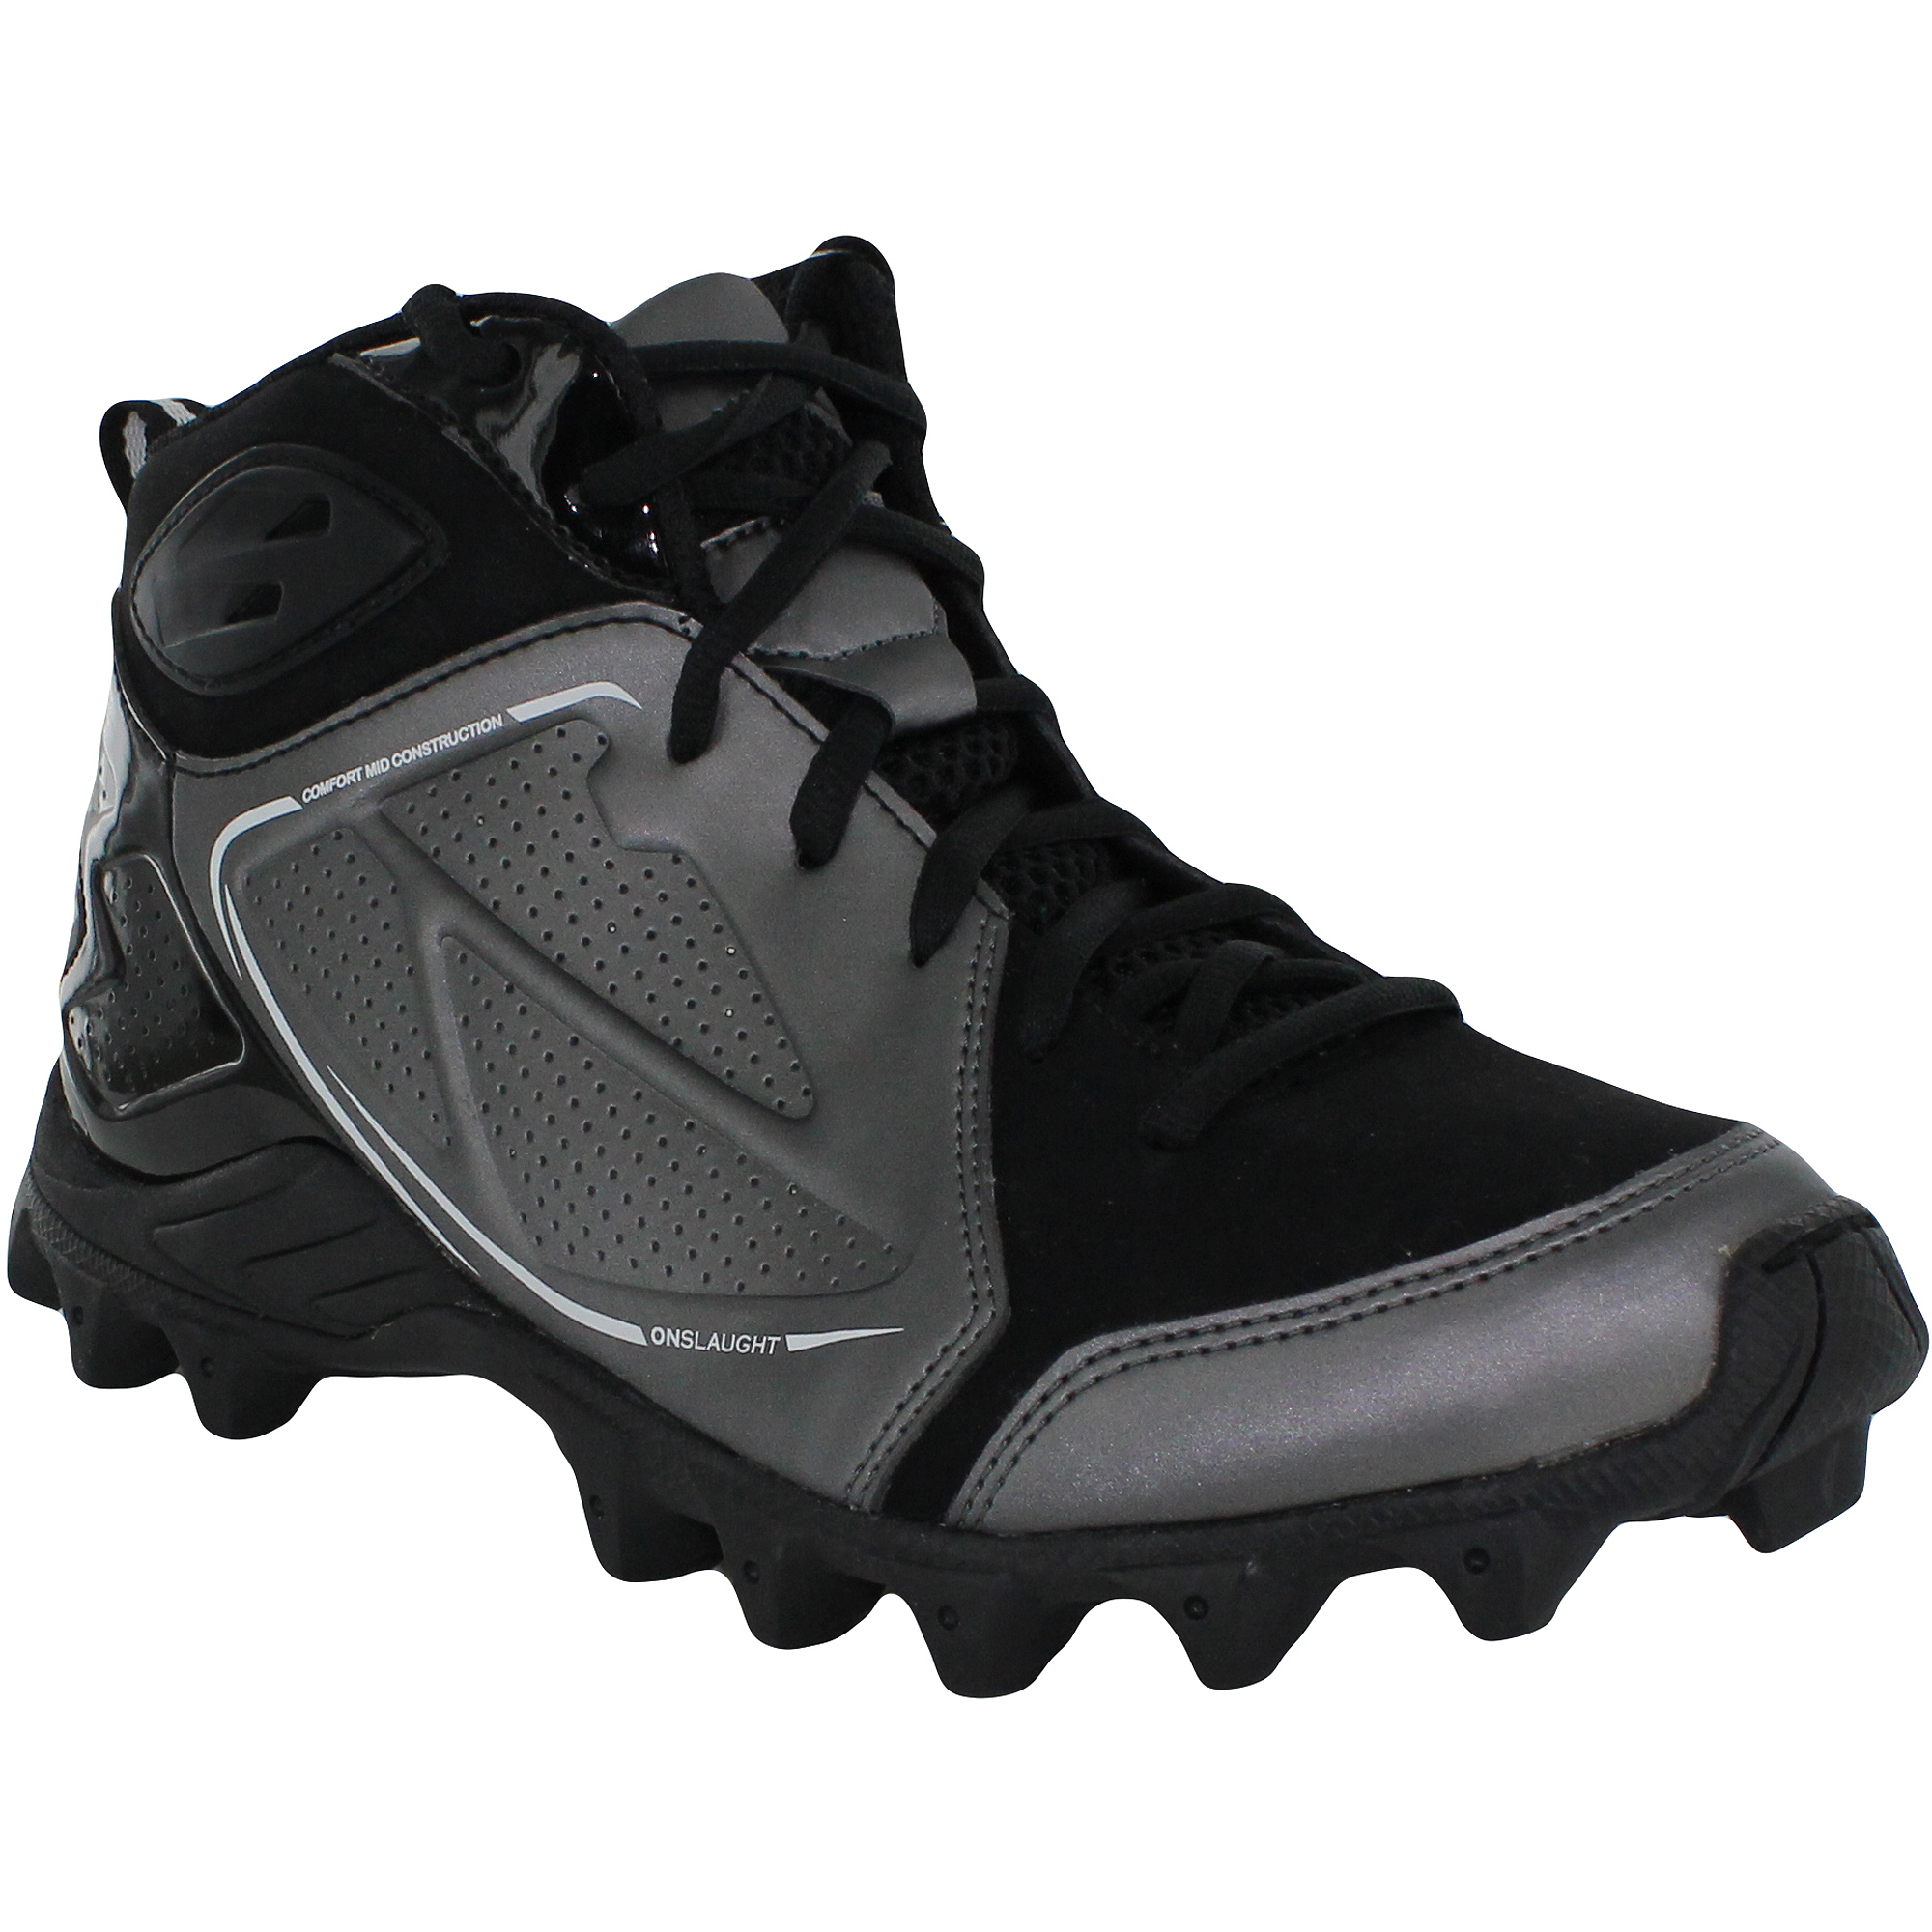 Starter Men's Onslaught Cleat